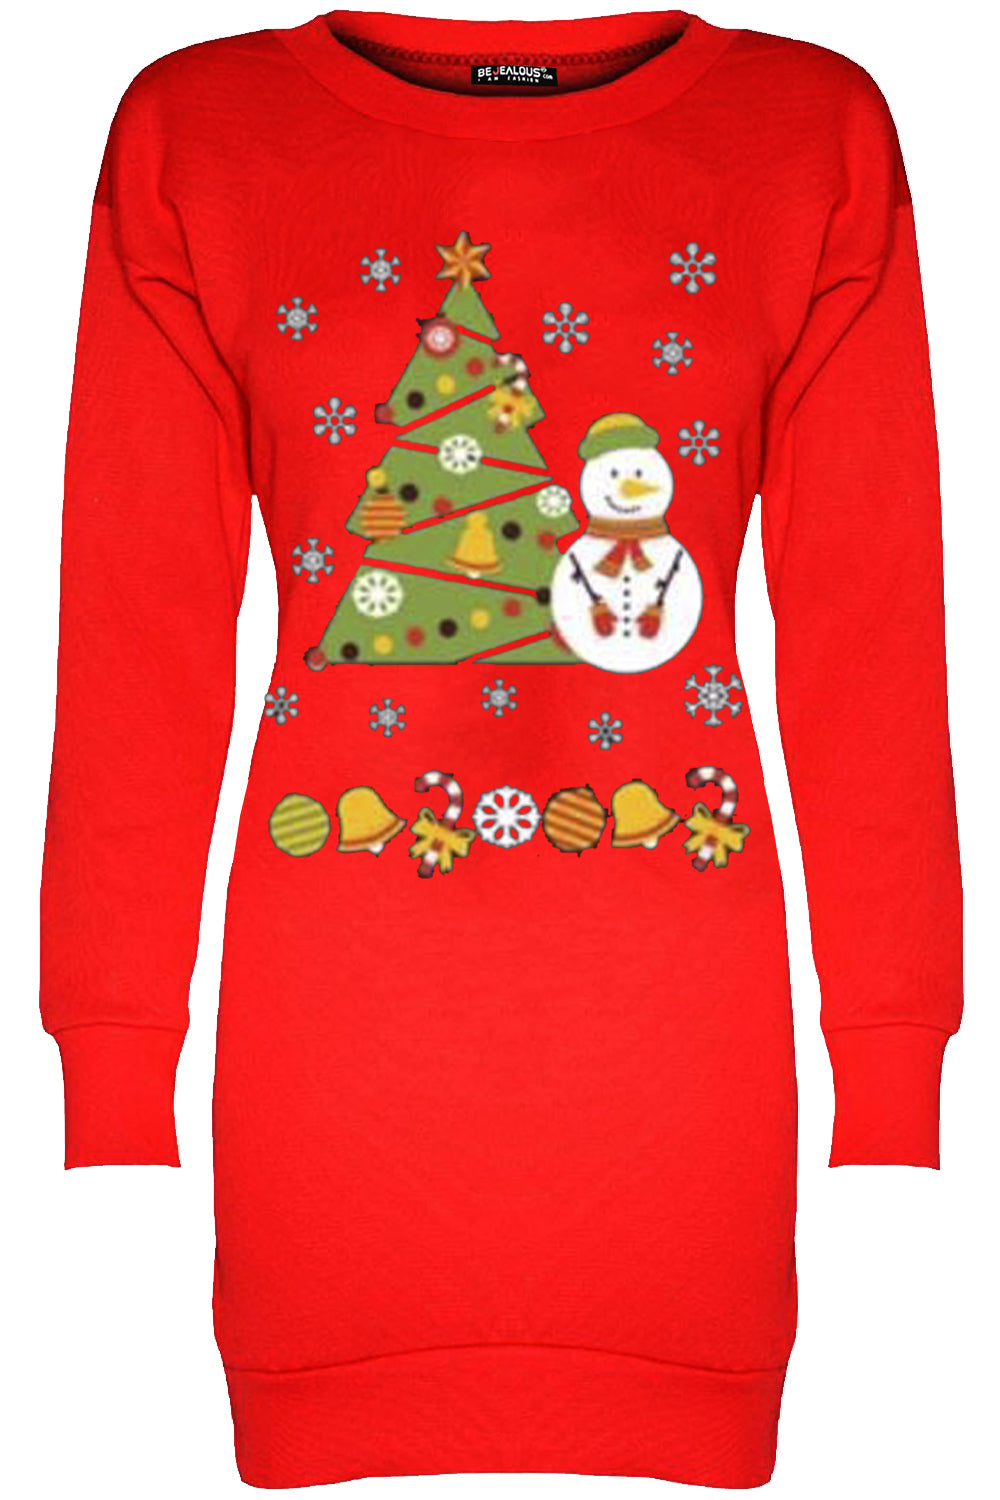 Festive Print Christmas Jumper Dress - bejealous-com